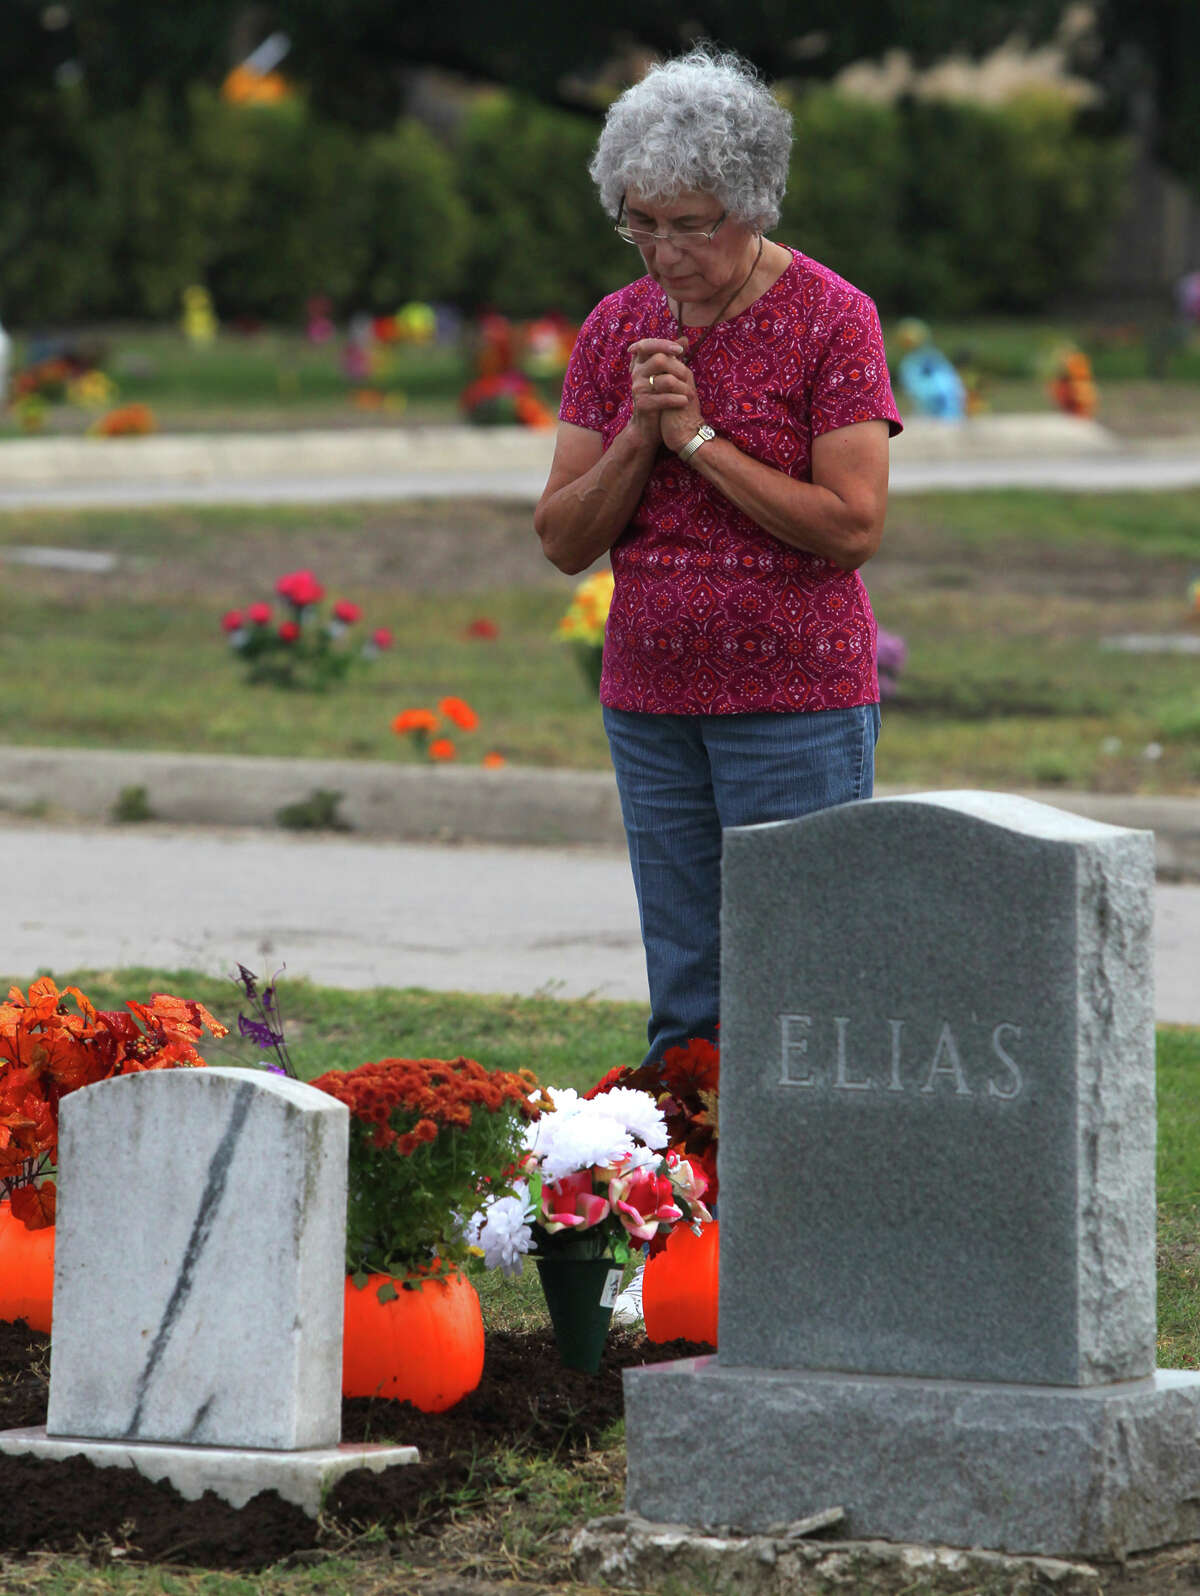 Elisa Van Tine prays at the graves of her mother and grandmother at San Fernando Cemetery No. 2 on the Catholic feast known as All Soul's Day or Dia de los Muertos Friday, Nov. 2, 2012.